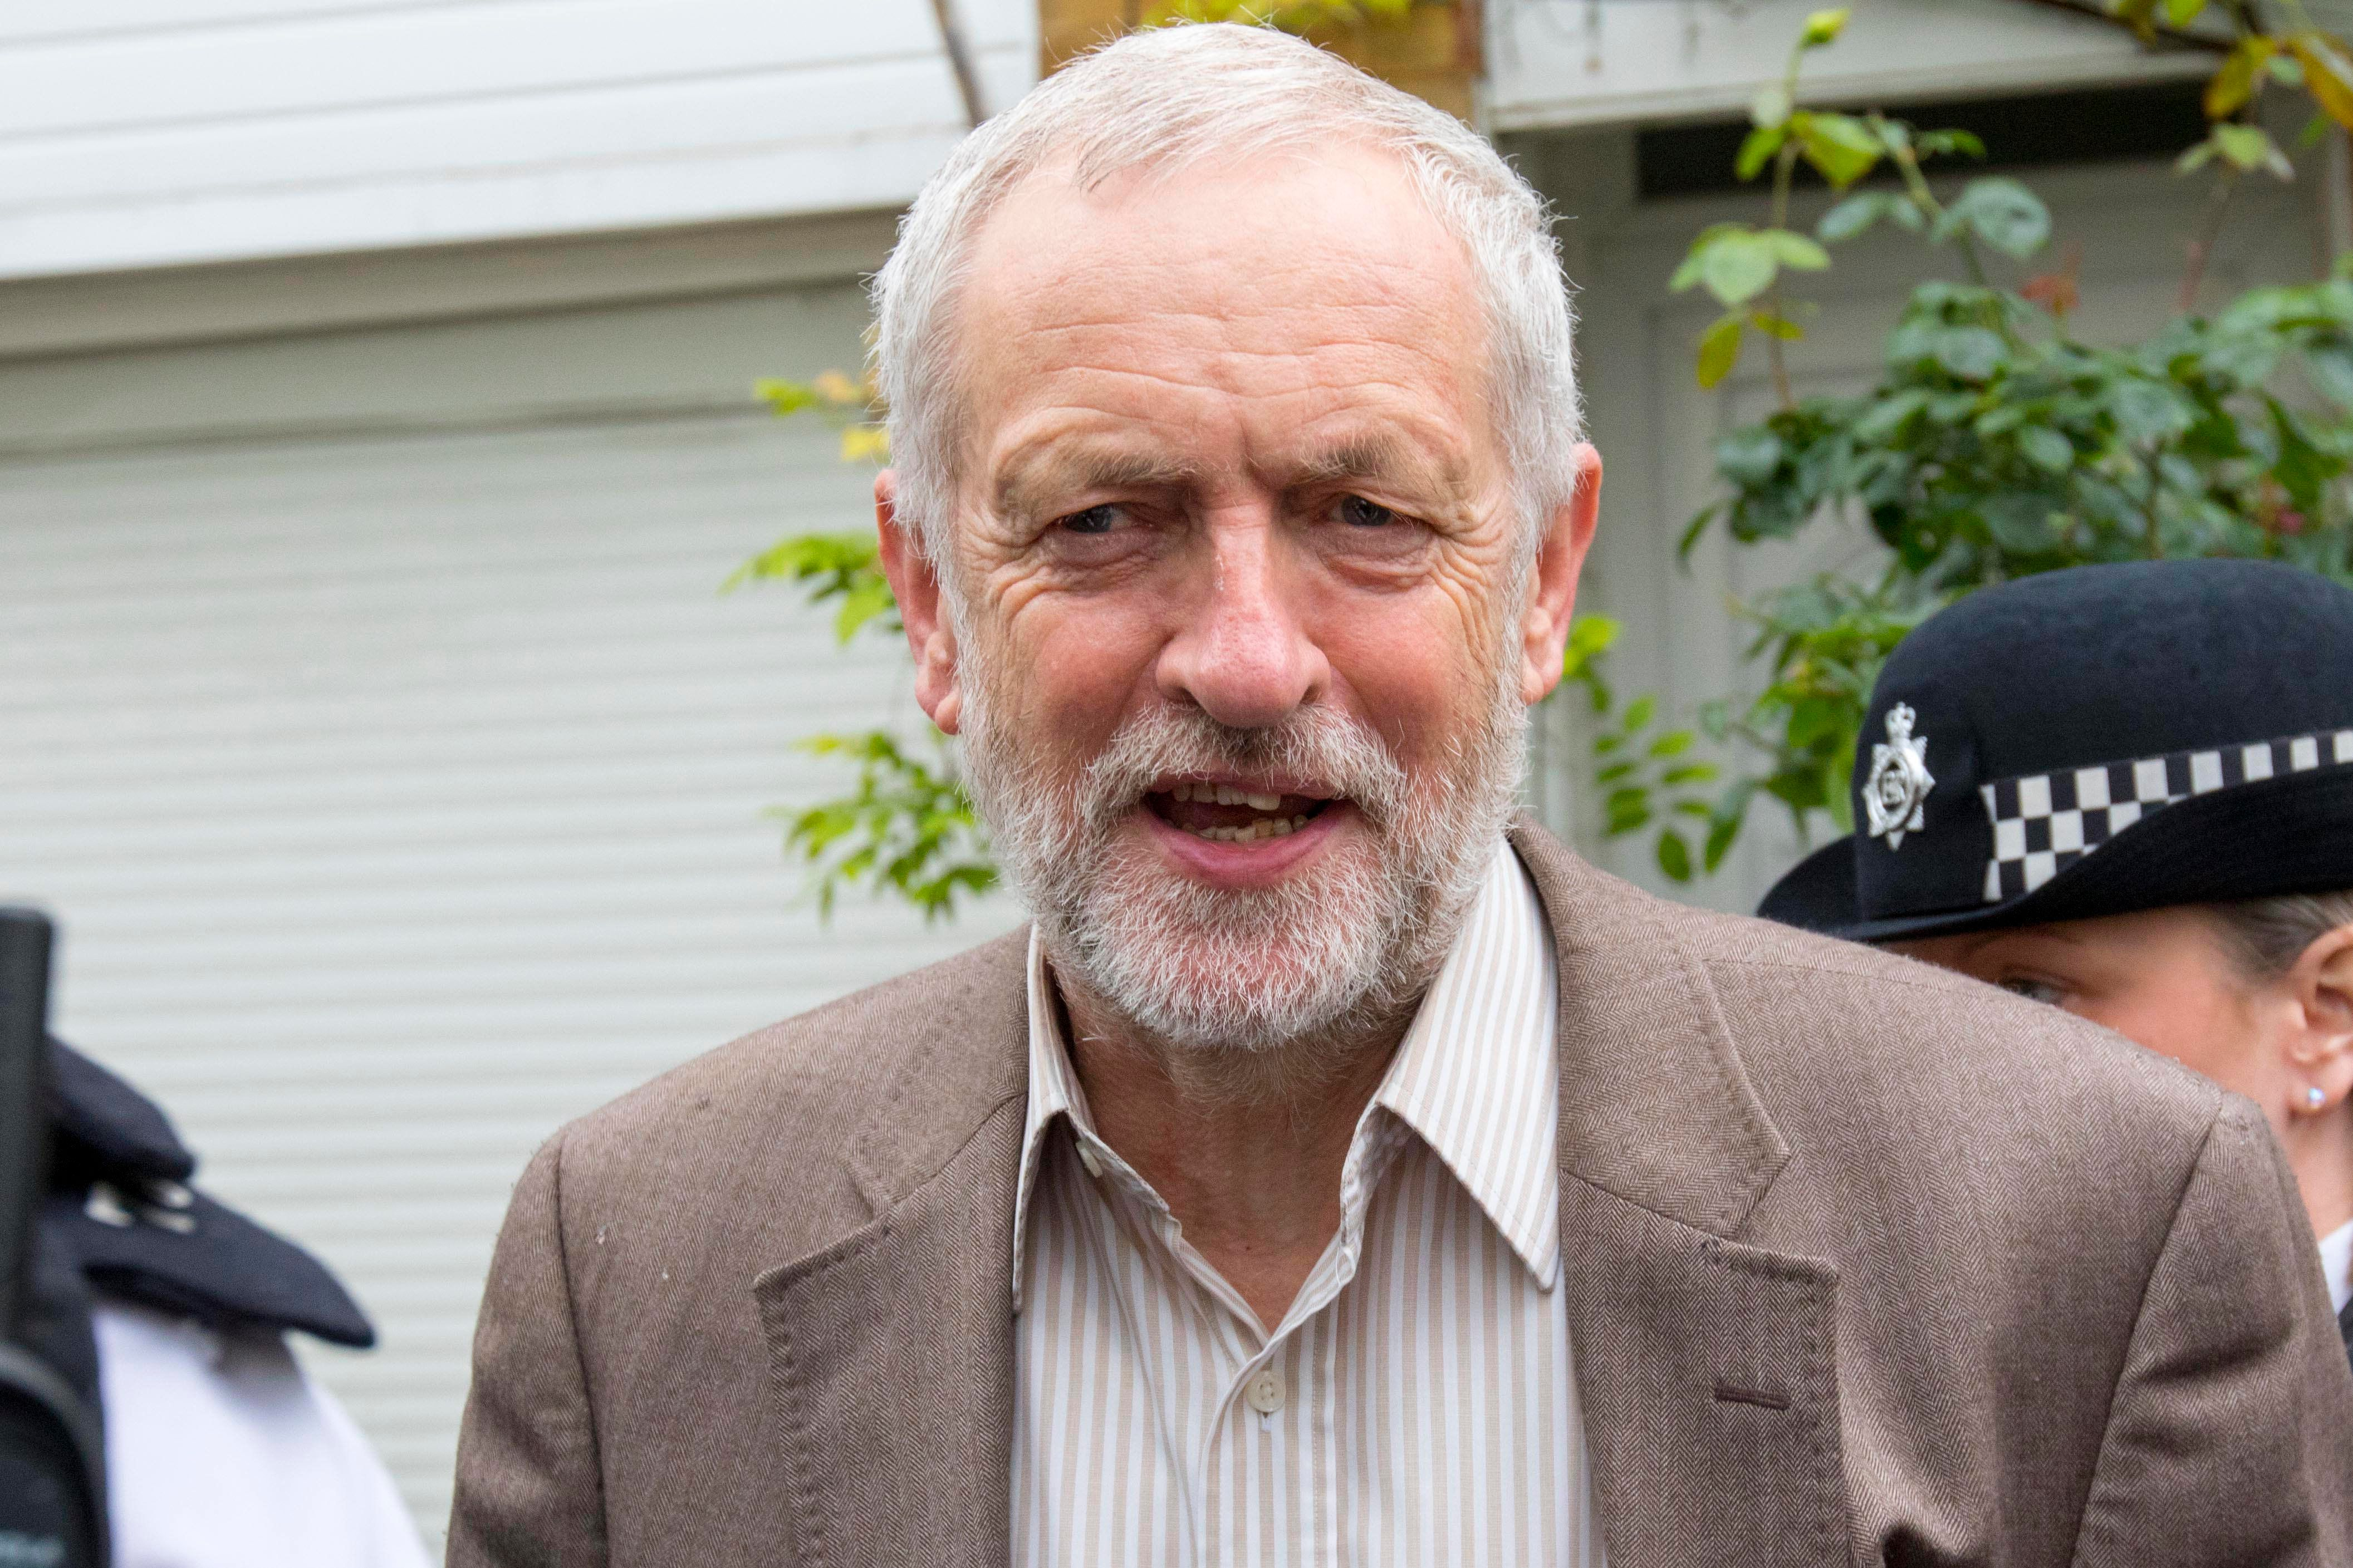 The Daily Mirror Has Abandoned Corbyn - But Its Readers Definitely